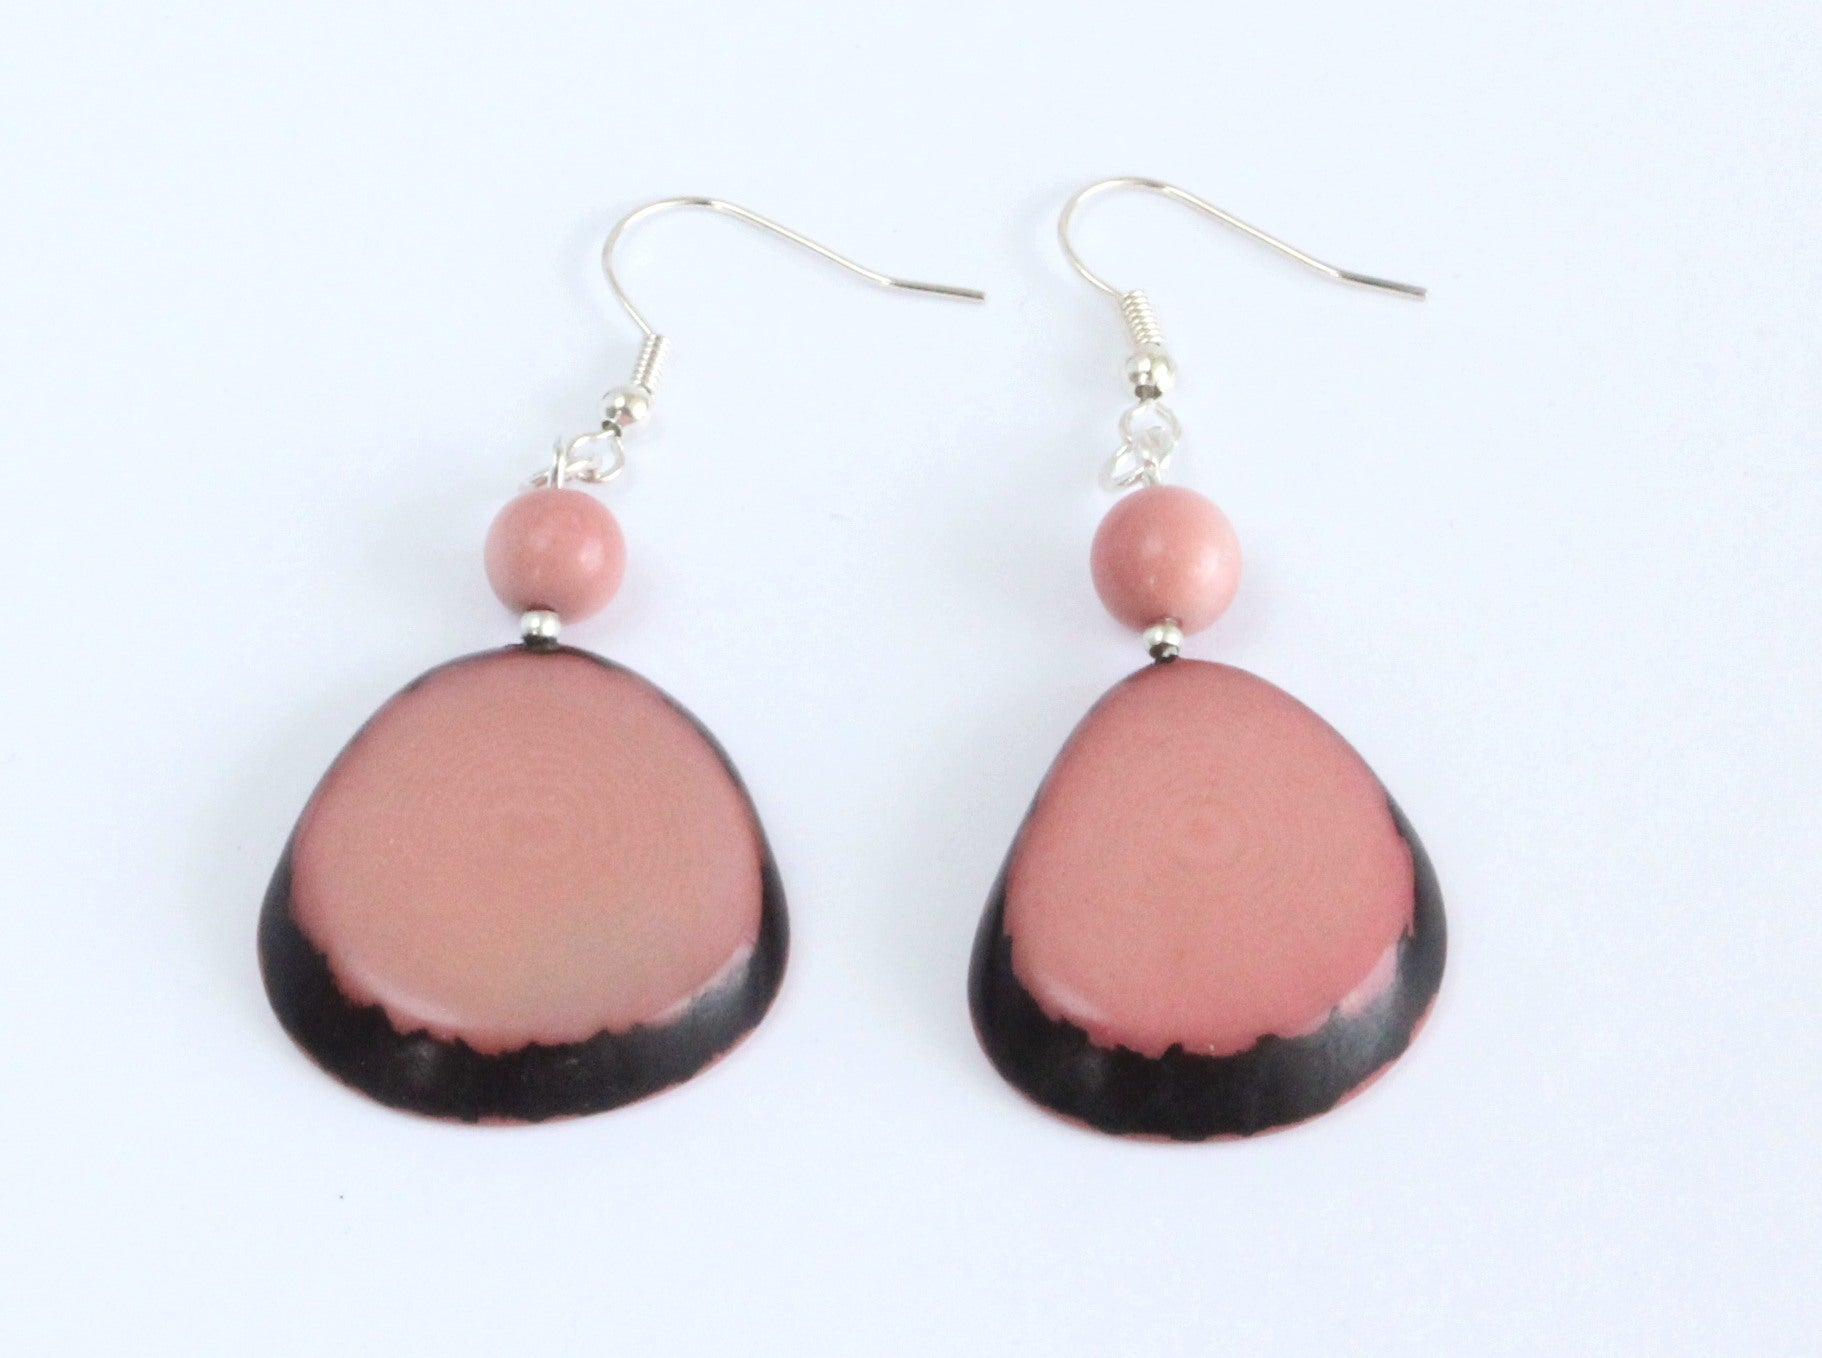 Handmade earring, fish hook, tagua, colourful, pink, front